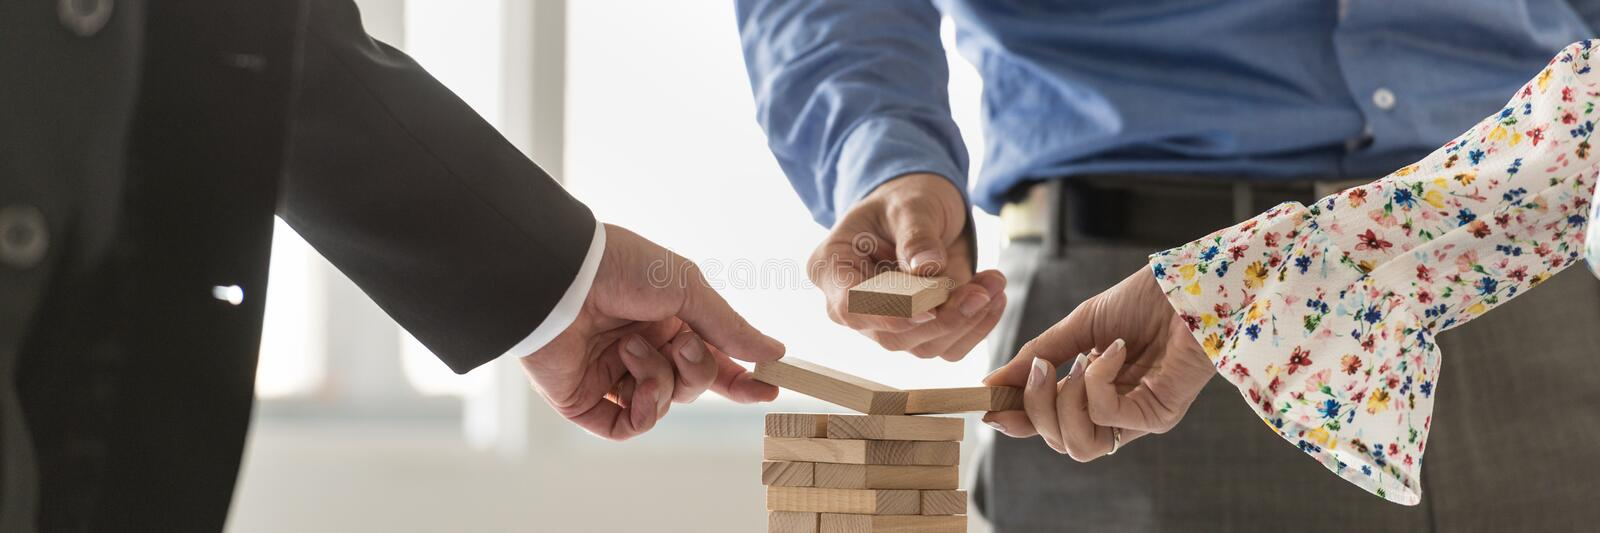 Conceptual image of business start up and teamwork royalty free stock photos